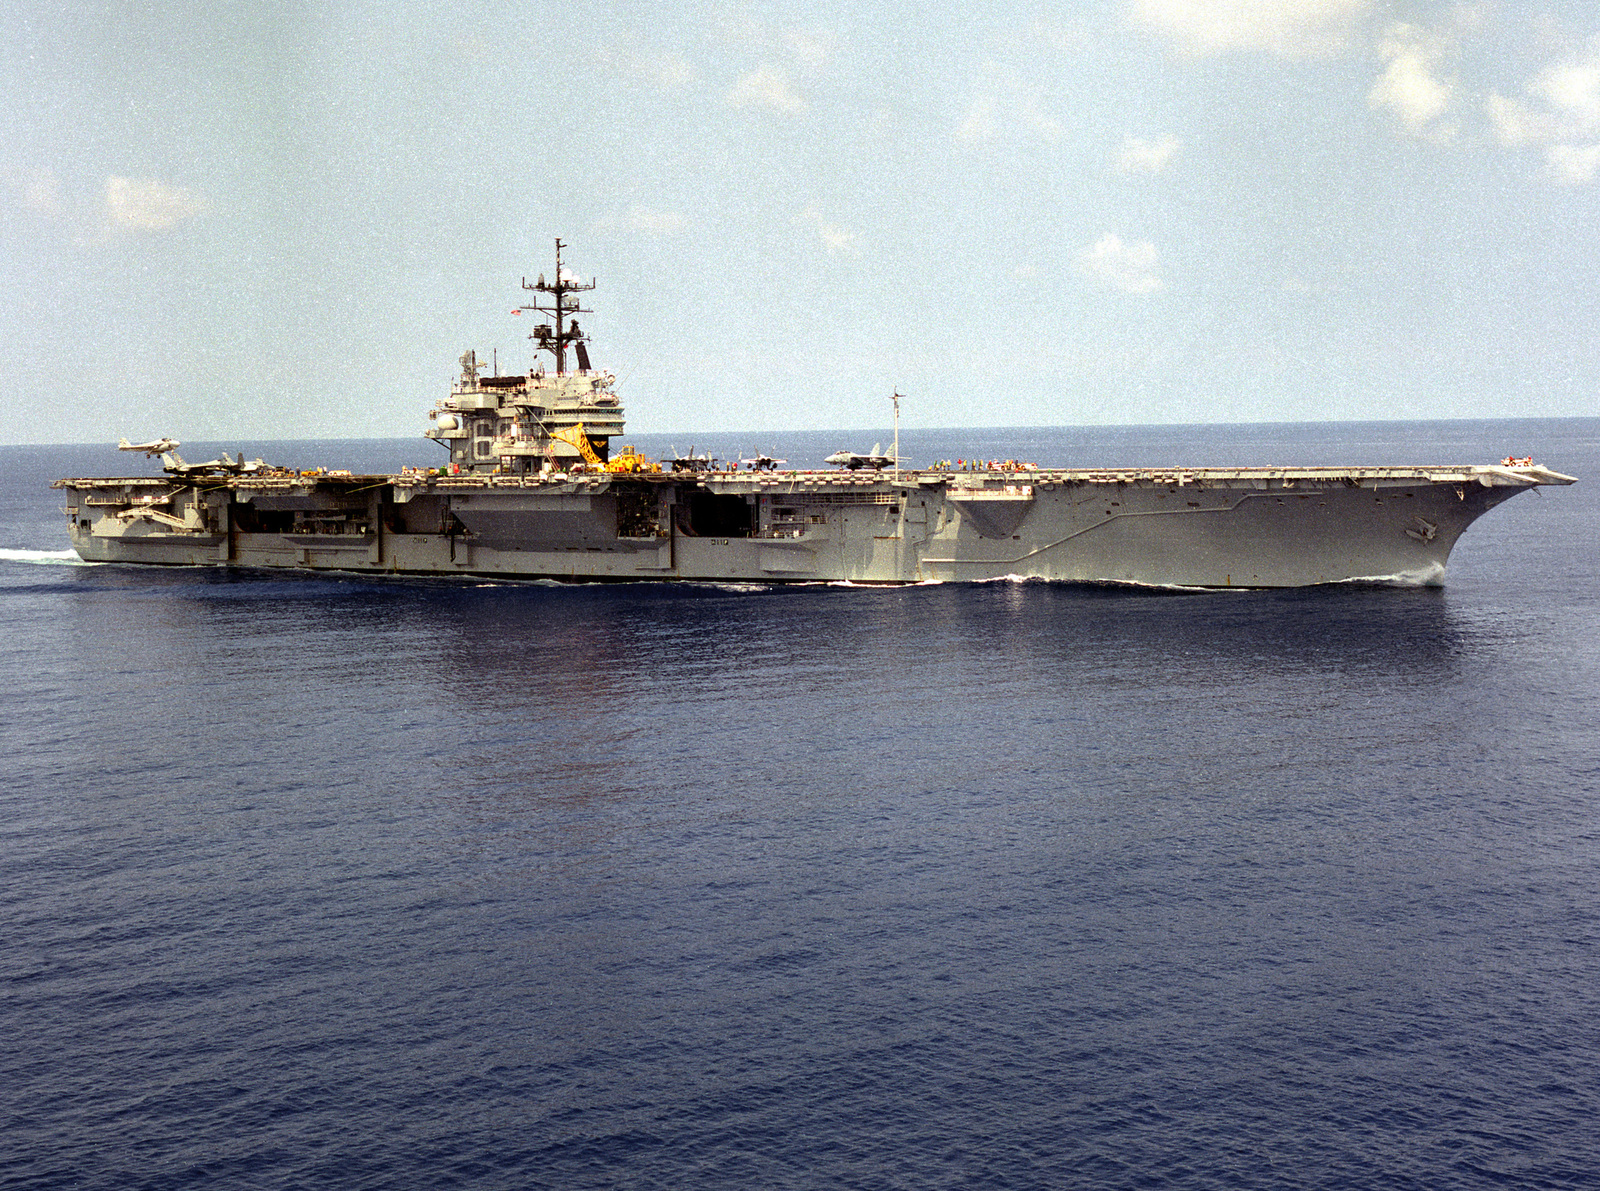 A starboard view of the aircraft carrier USS SARATOGA (CV-60) underway as an A-6E Intruder aircraft prepares to land on the flight deck